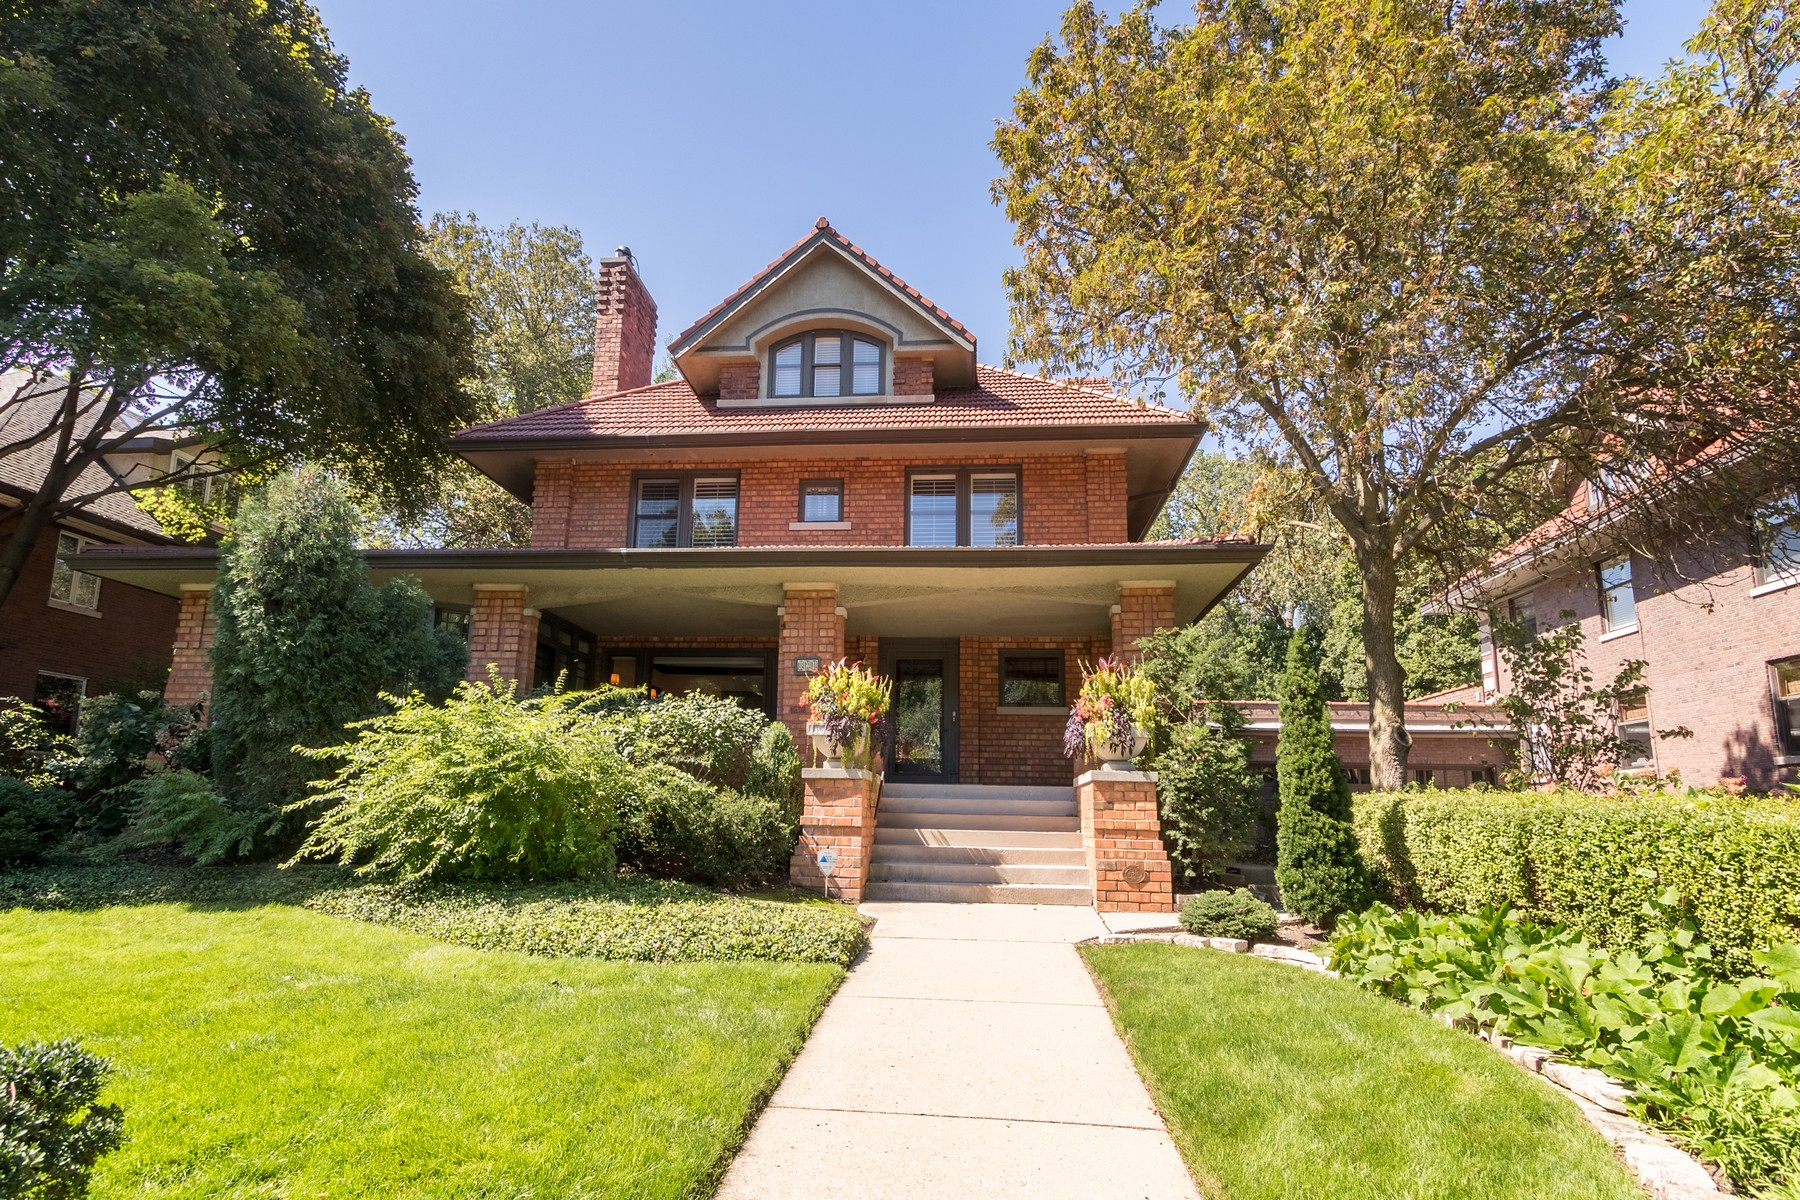 Single Family Home for Sale at Stunning Landmark Home 824 Sheridan Road Evanston, Illinois 60202 United States